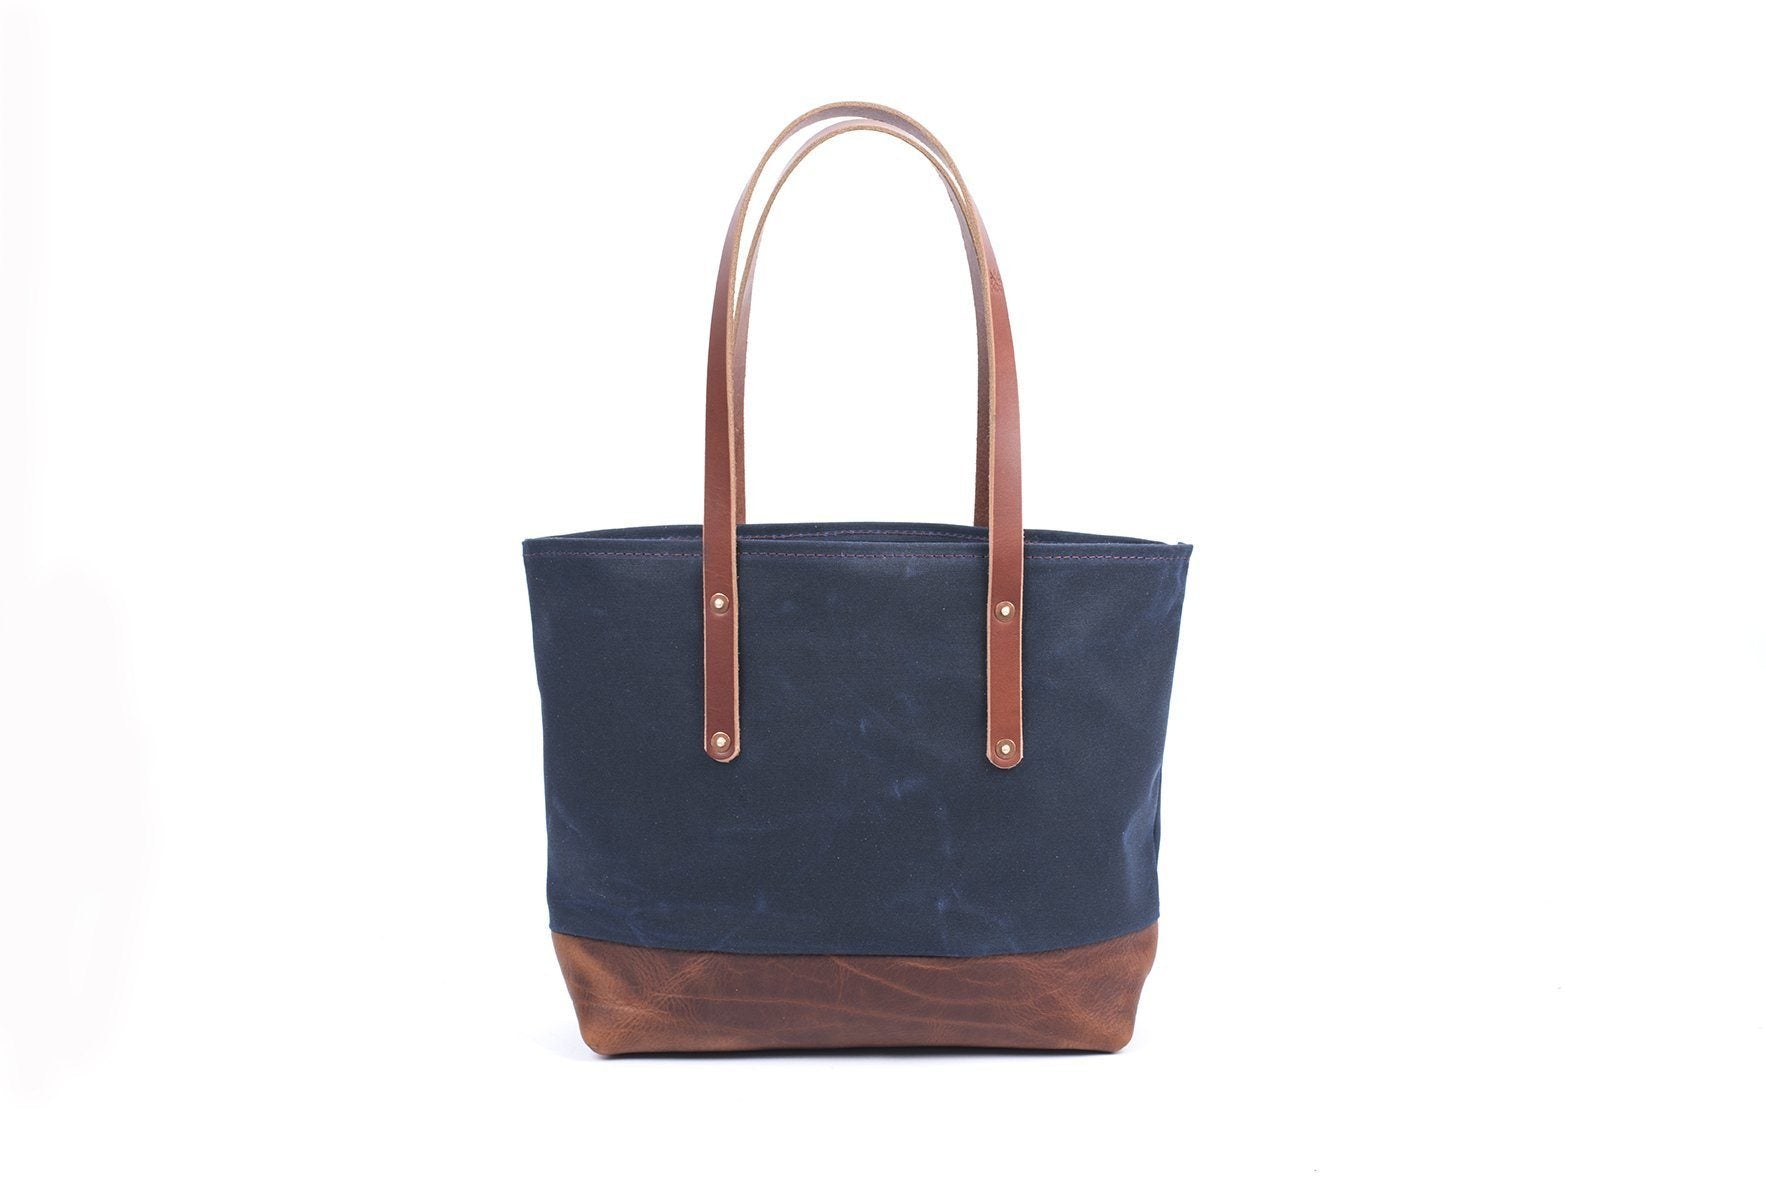 d14cb1898 AVERY WAXED CANVAS TOTE BAG - MEDIUM - Go Forth Goods